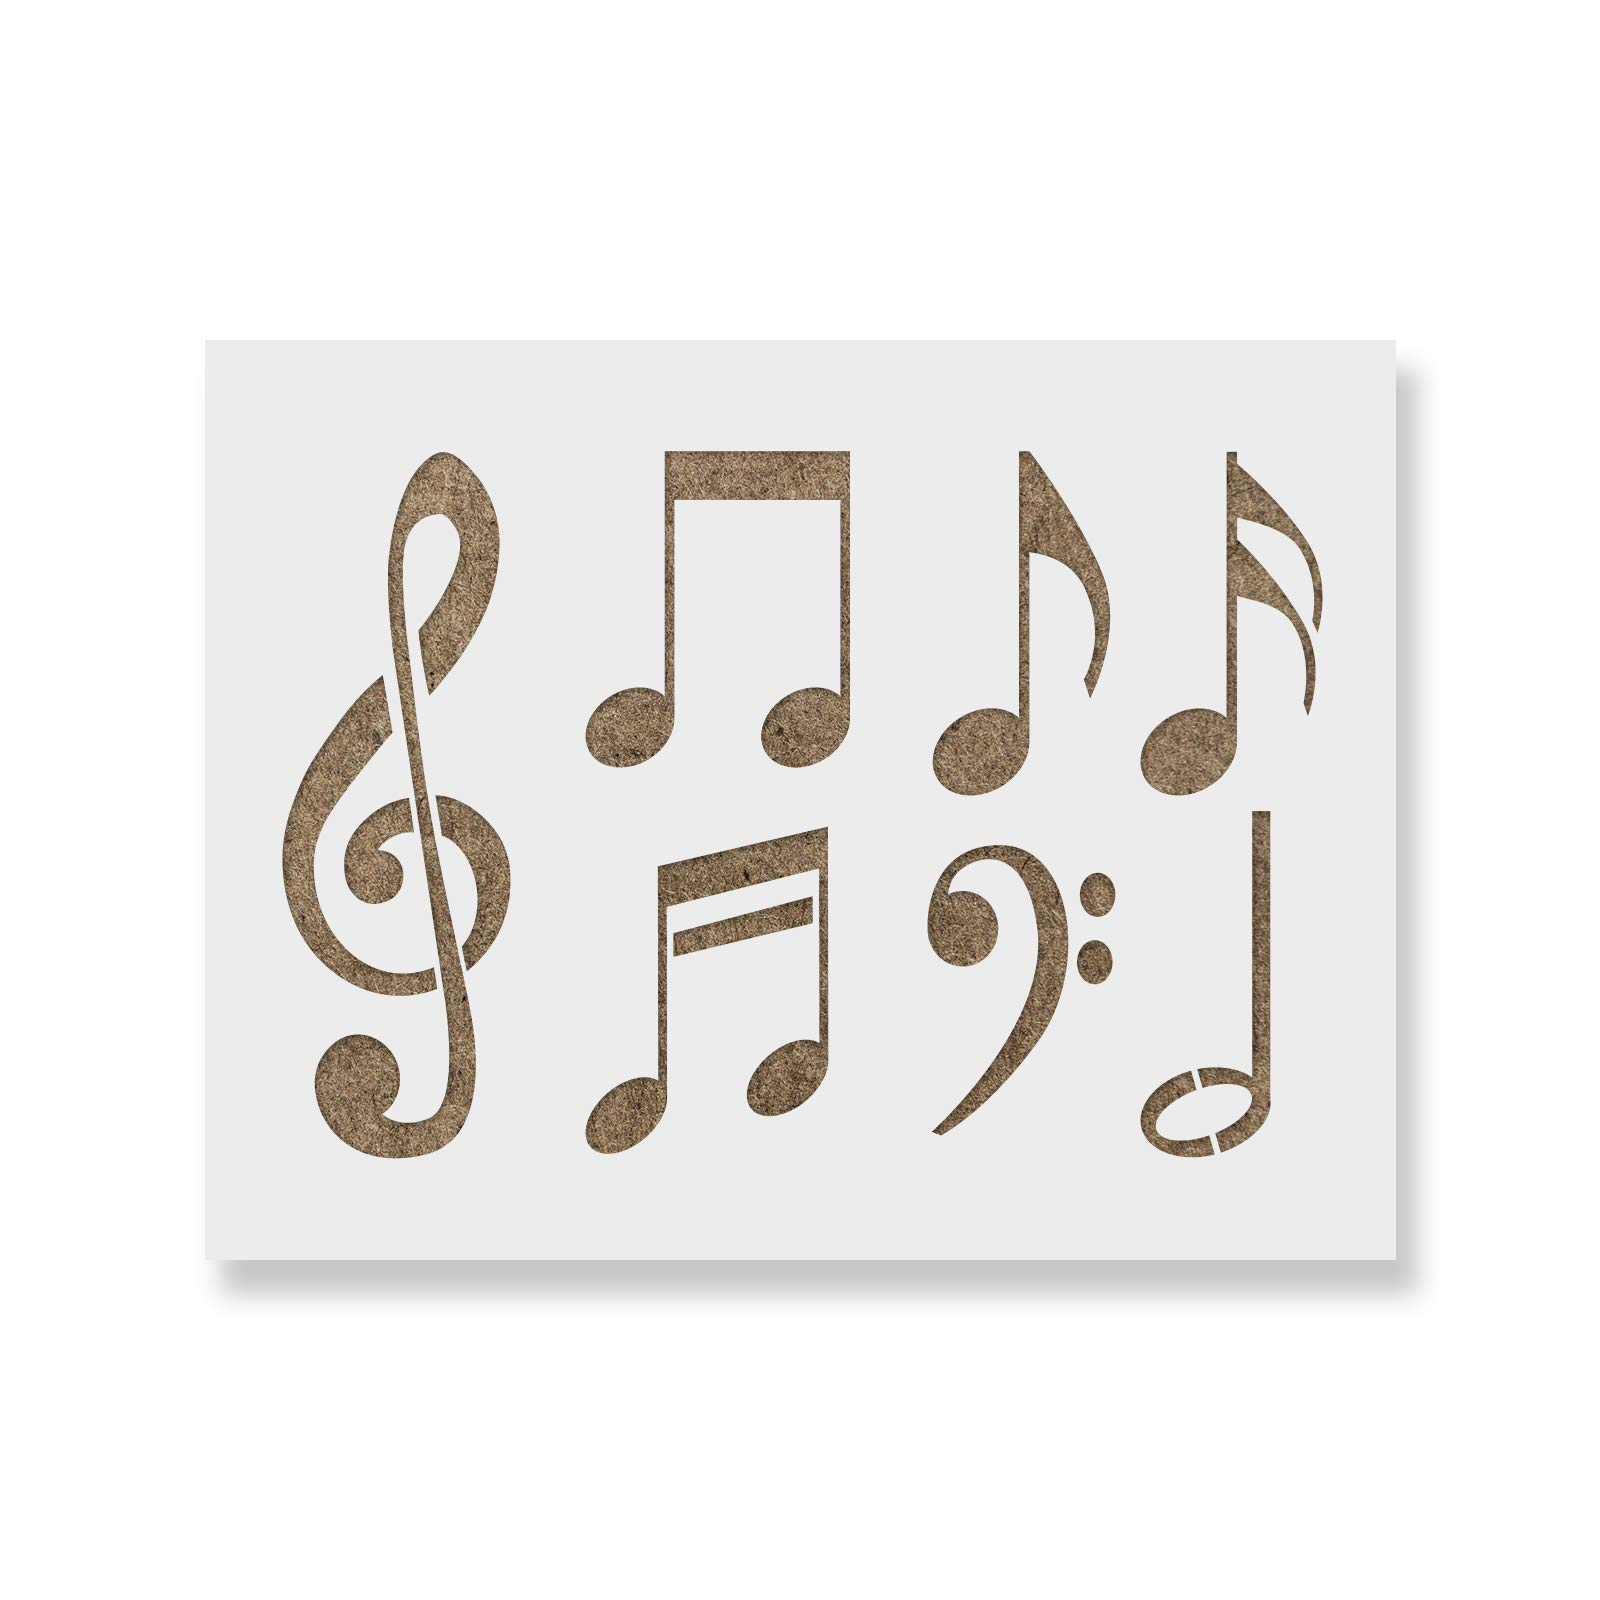 Music Notes Stencil Template - Reusable Stencil with Multiple Sizes Available